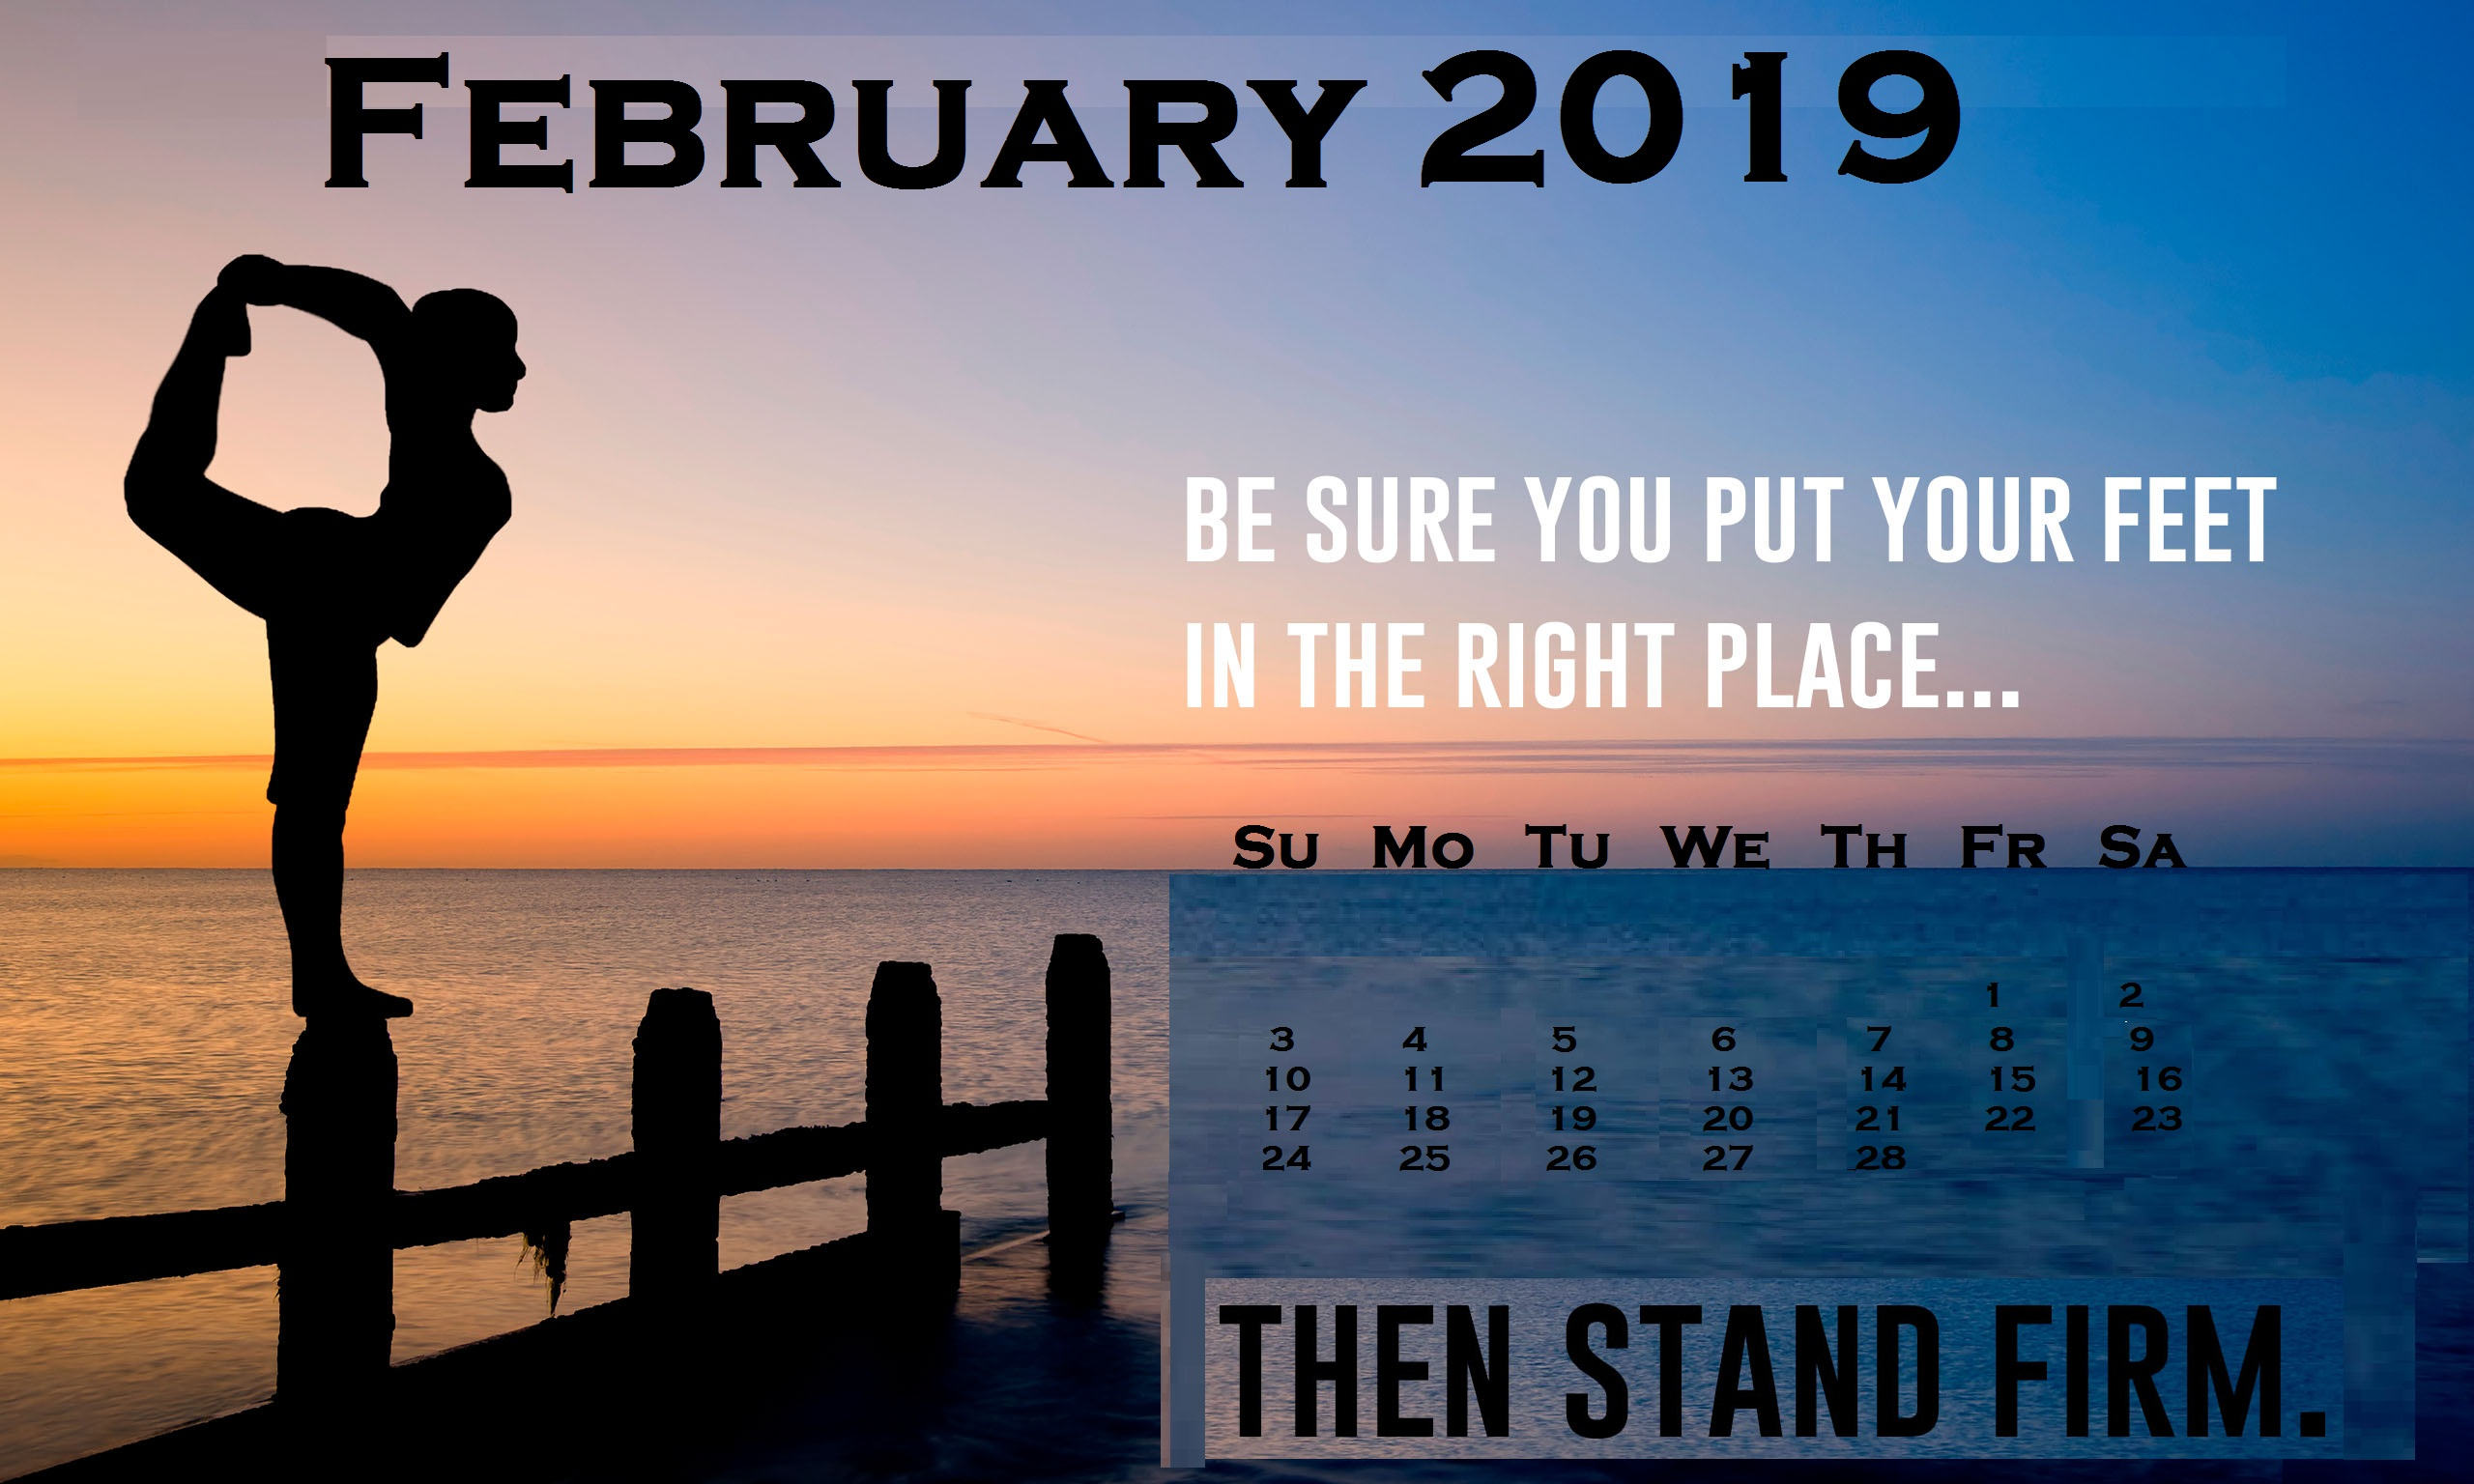 February 2019 Motivational Desktop Calendar